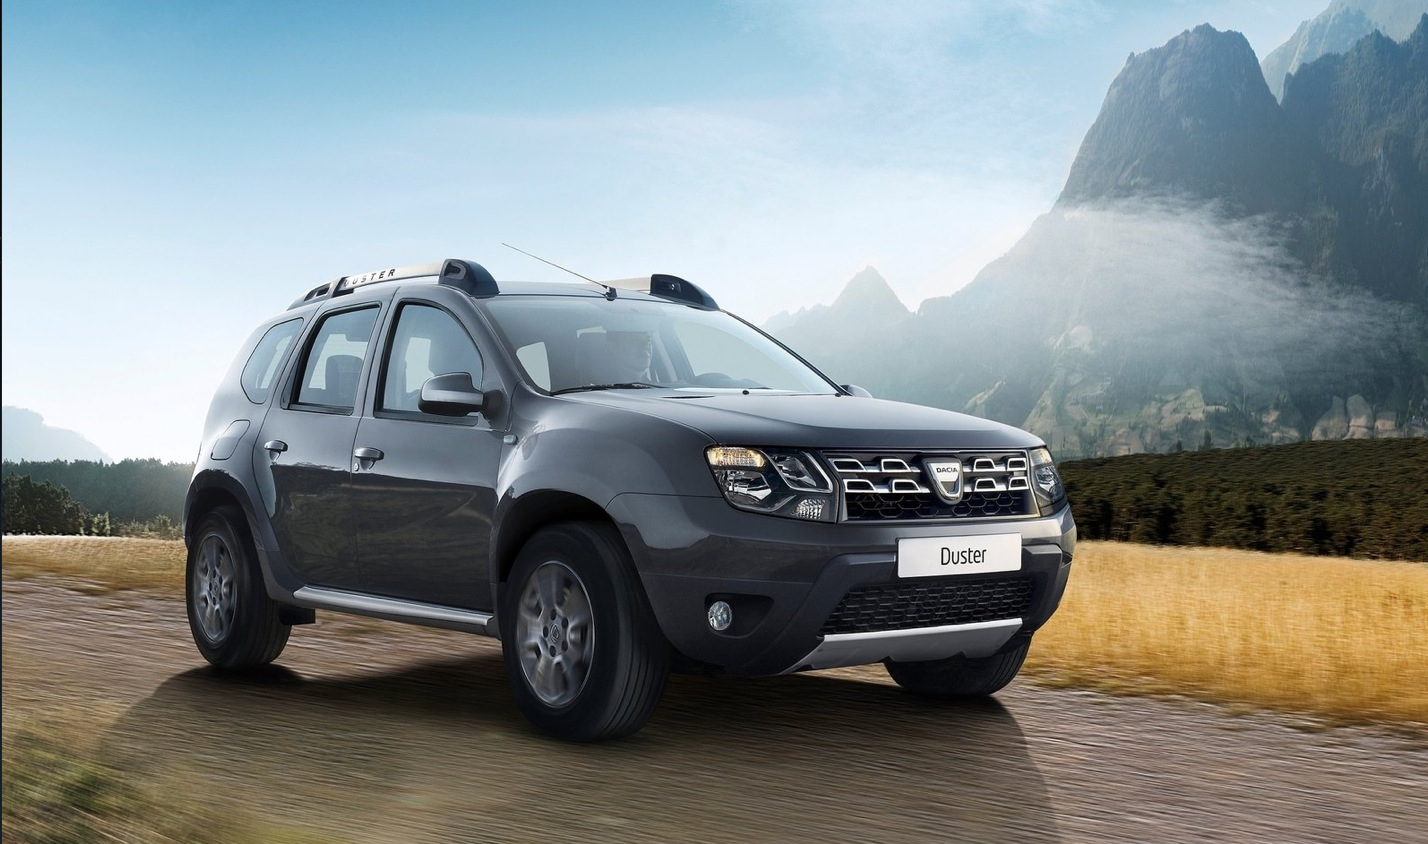 New dacia duster coming in 2016 with 7 seat option autoevolution 61 photos voltagebd Image collections